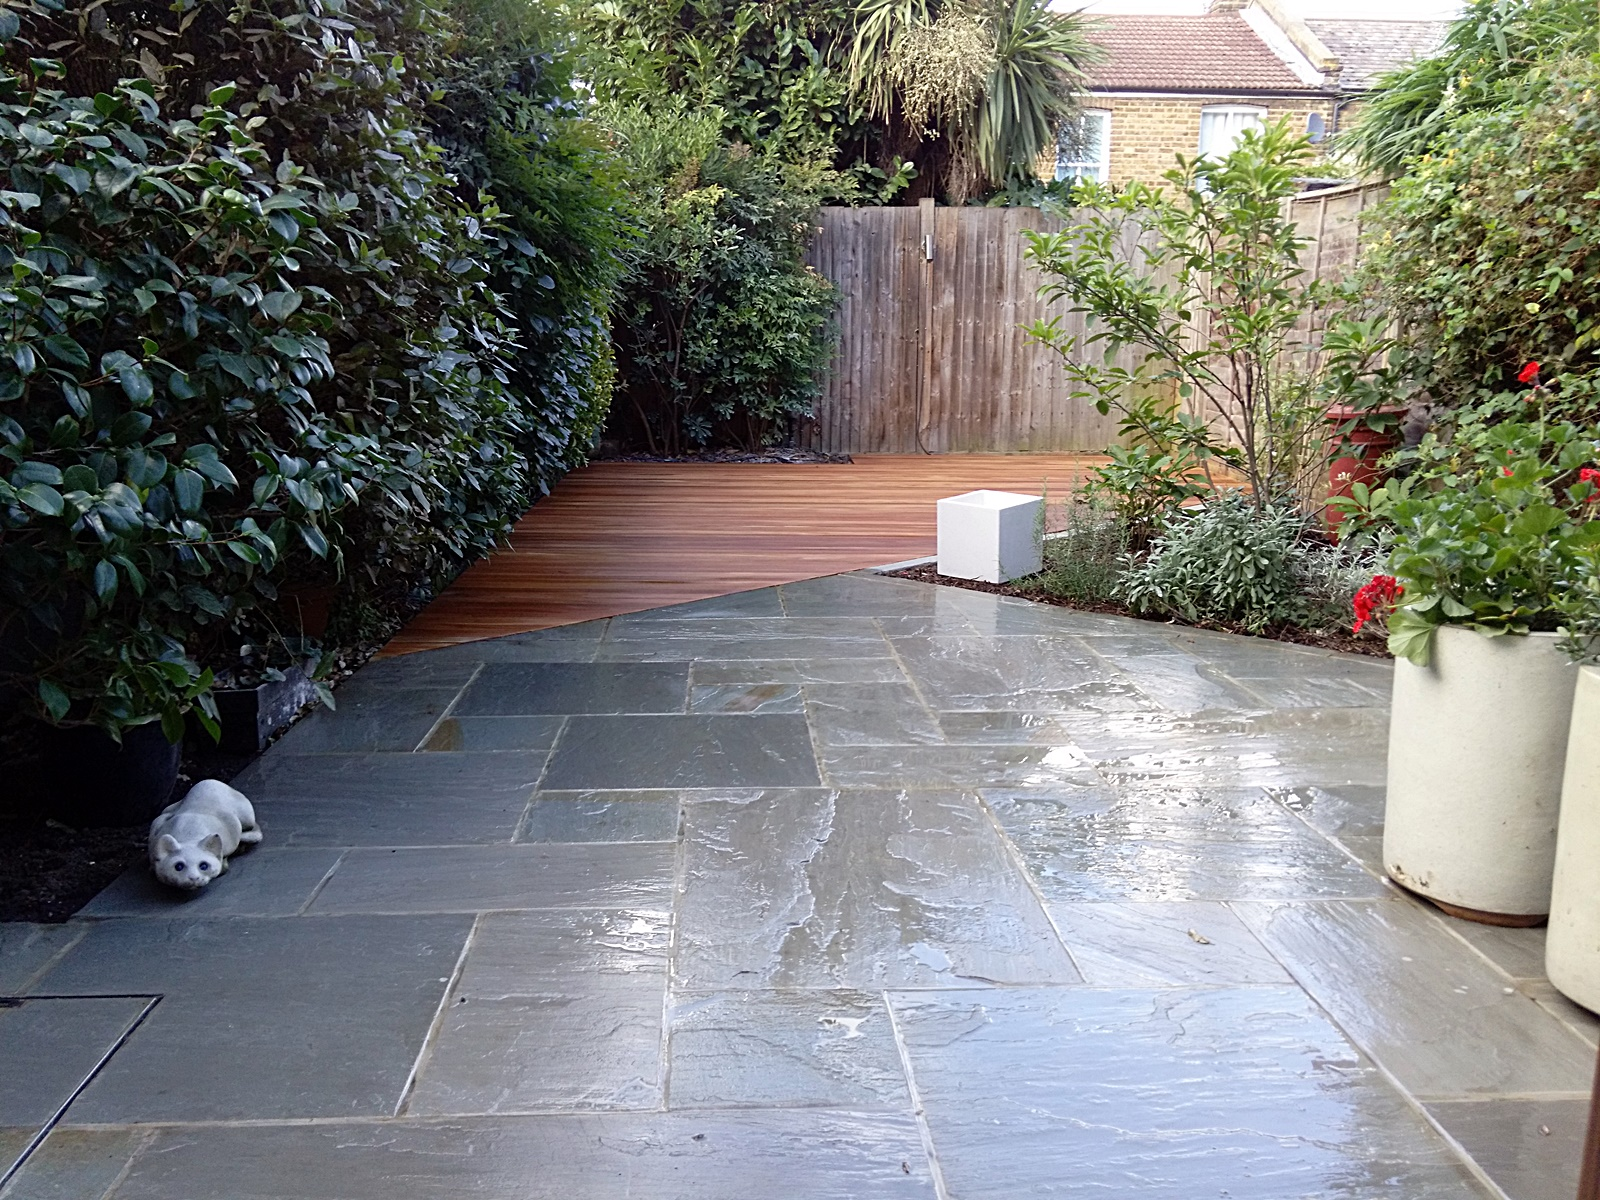 Path tile decking paving low maintenance privacy screen for Gardens with decking and paving